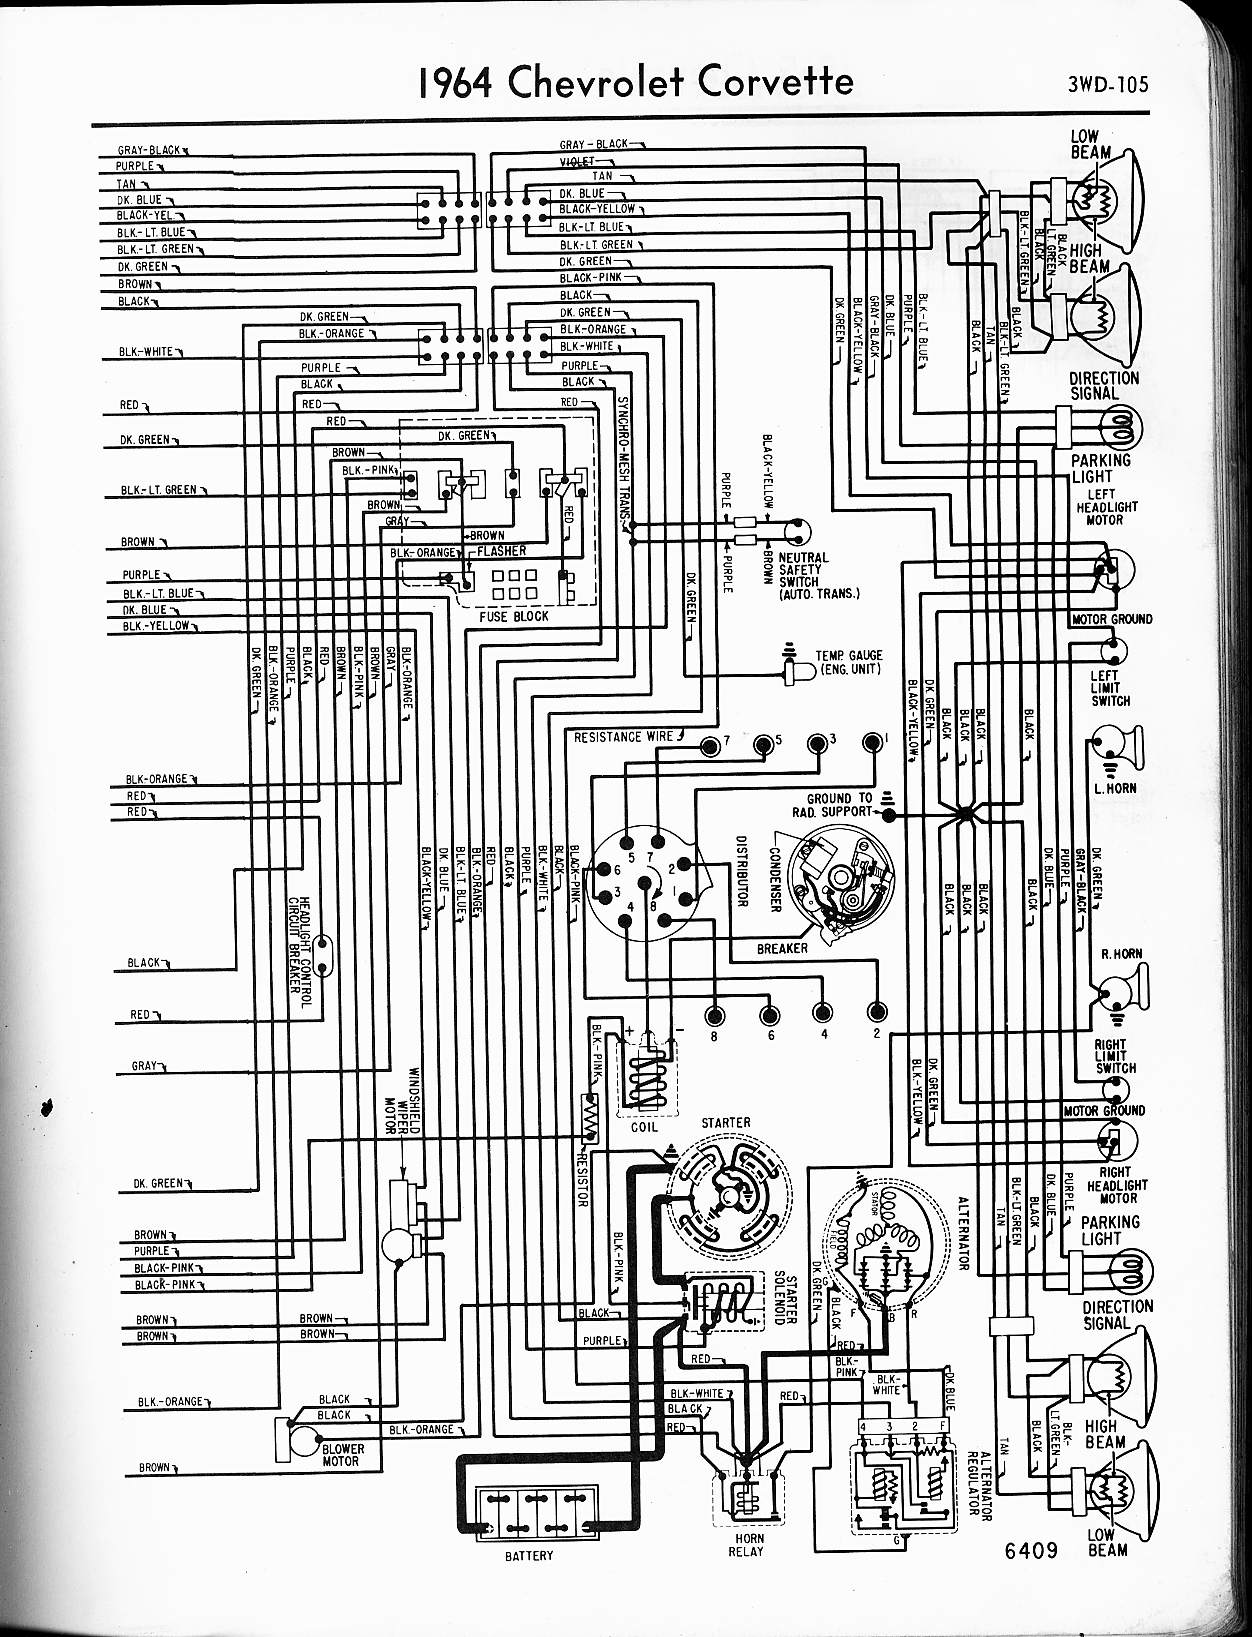 MWireChev64_3WD 105 57 65 chevy wiring diagrams 1960 corvette wiring diagram at panicattacktreatment.co